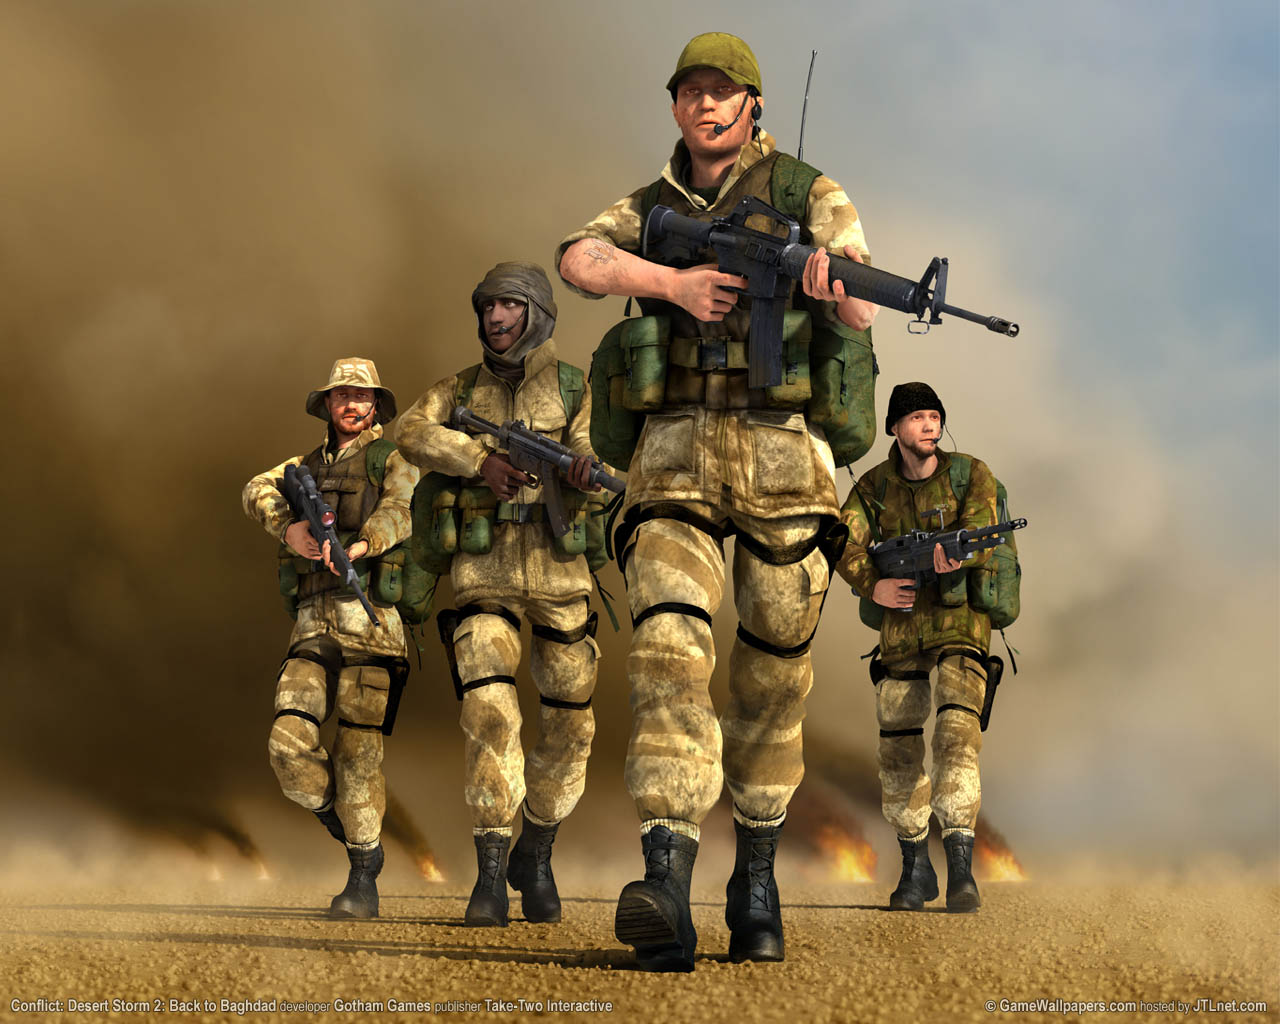 images conflict conflict: desert storm 2 games